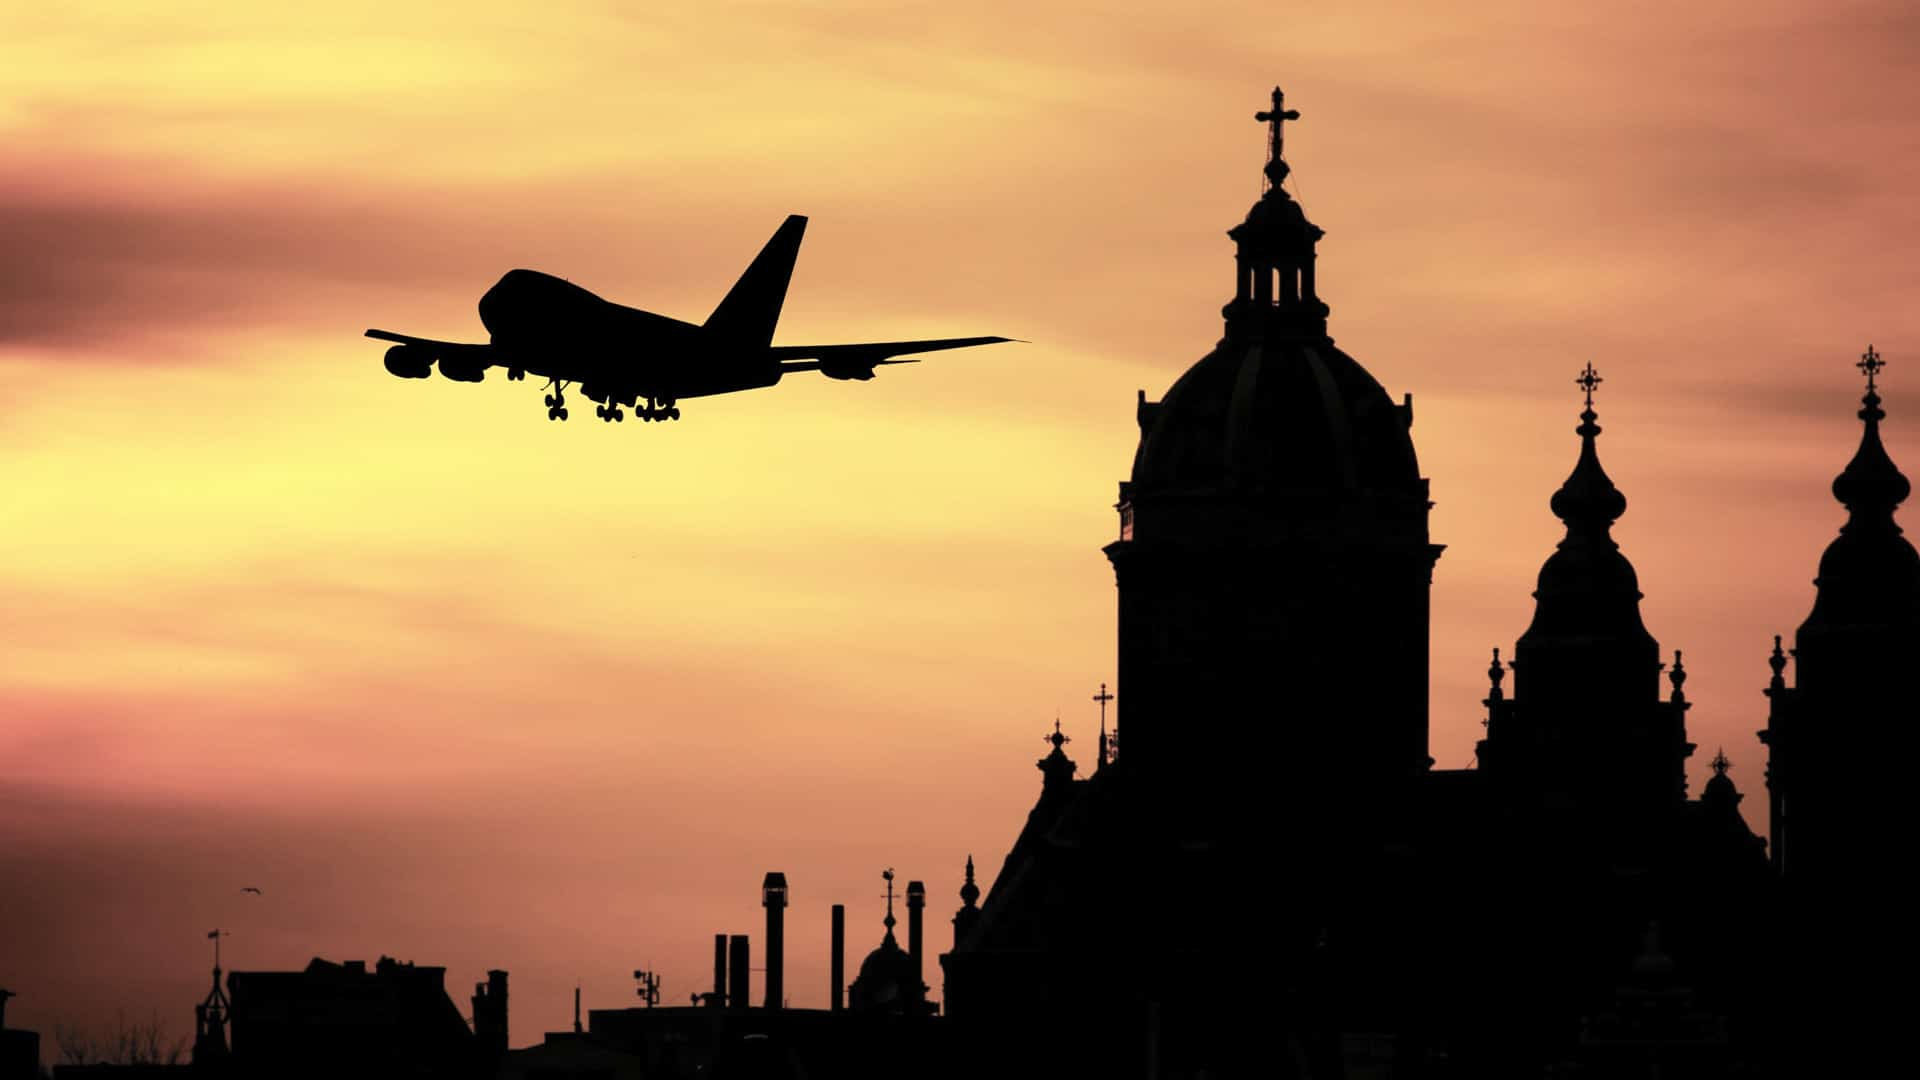 Plane and Building Silhouette